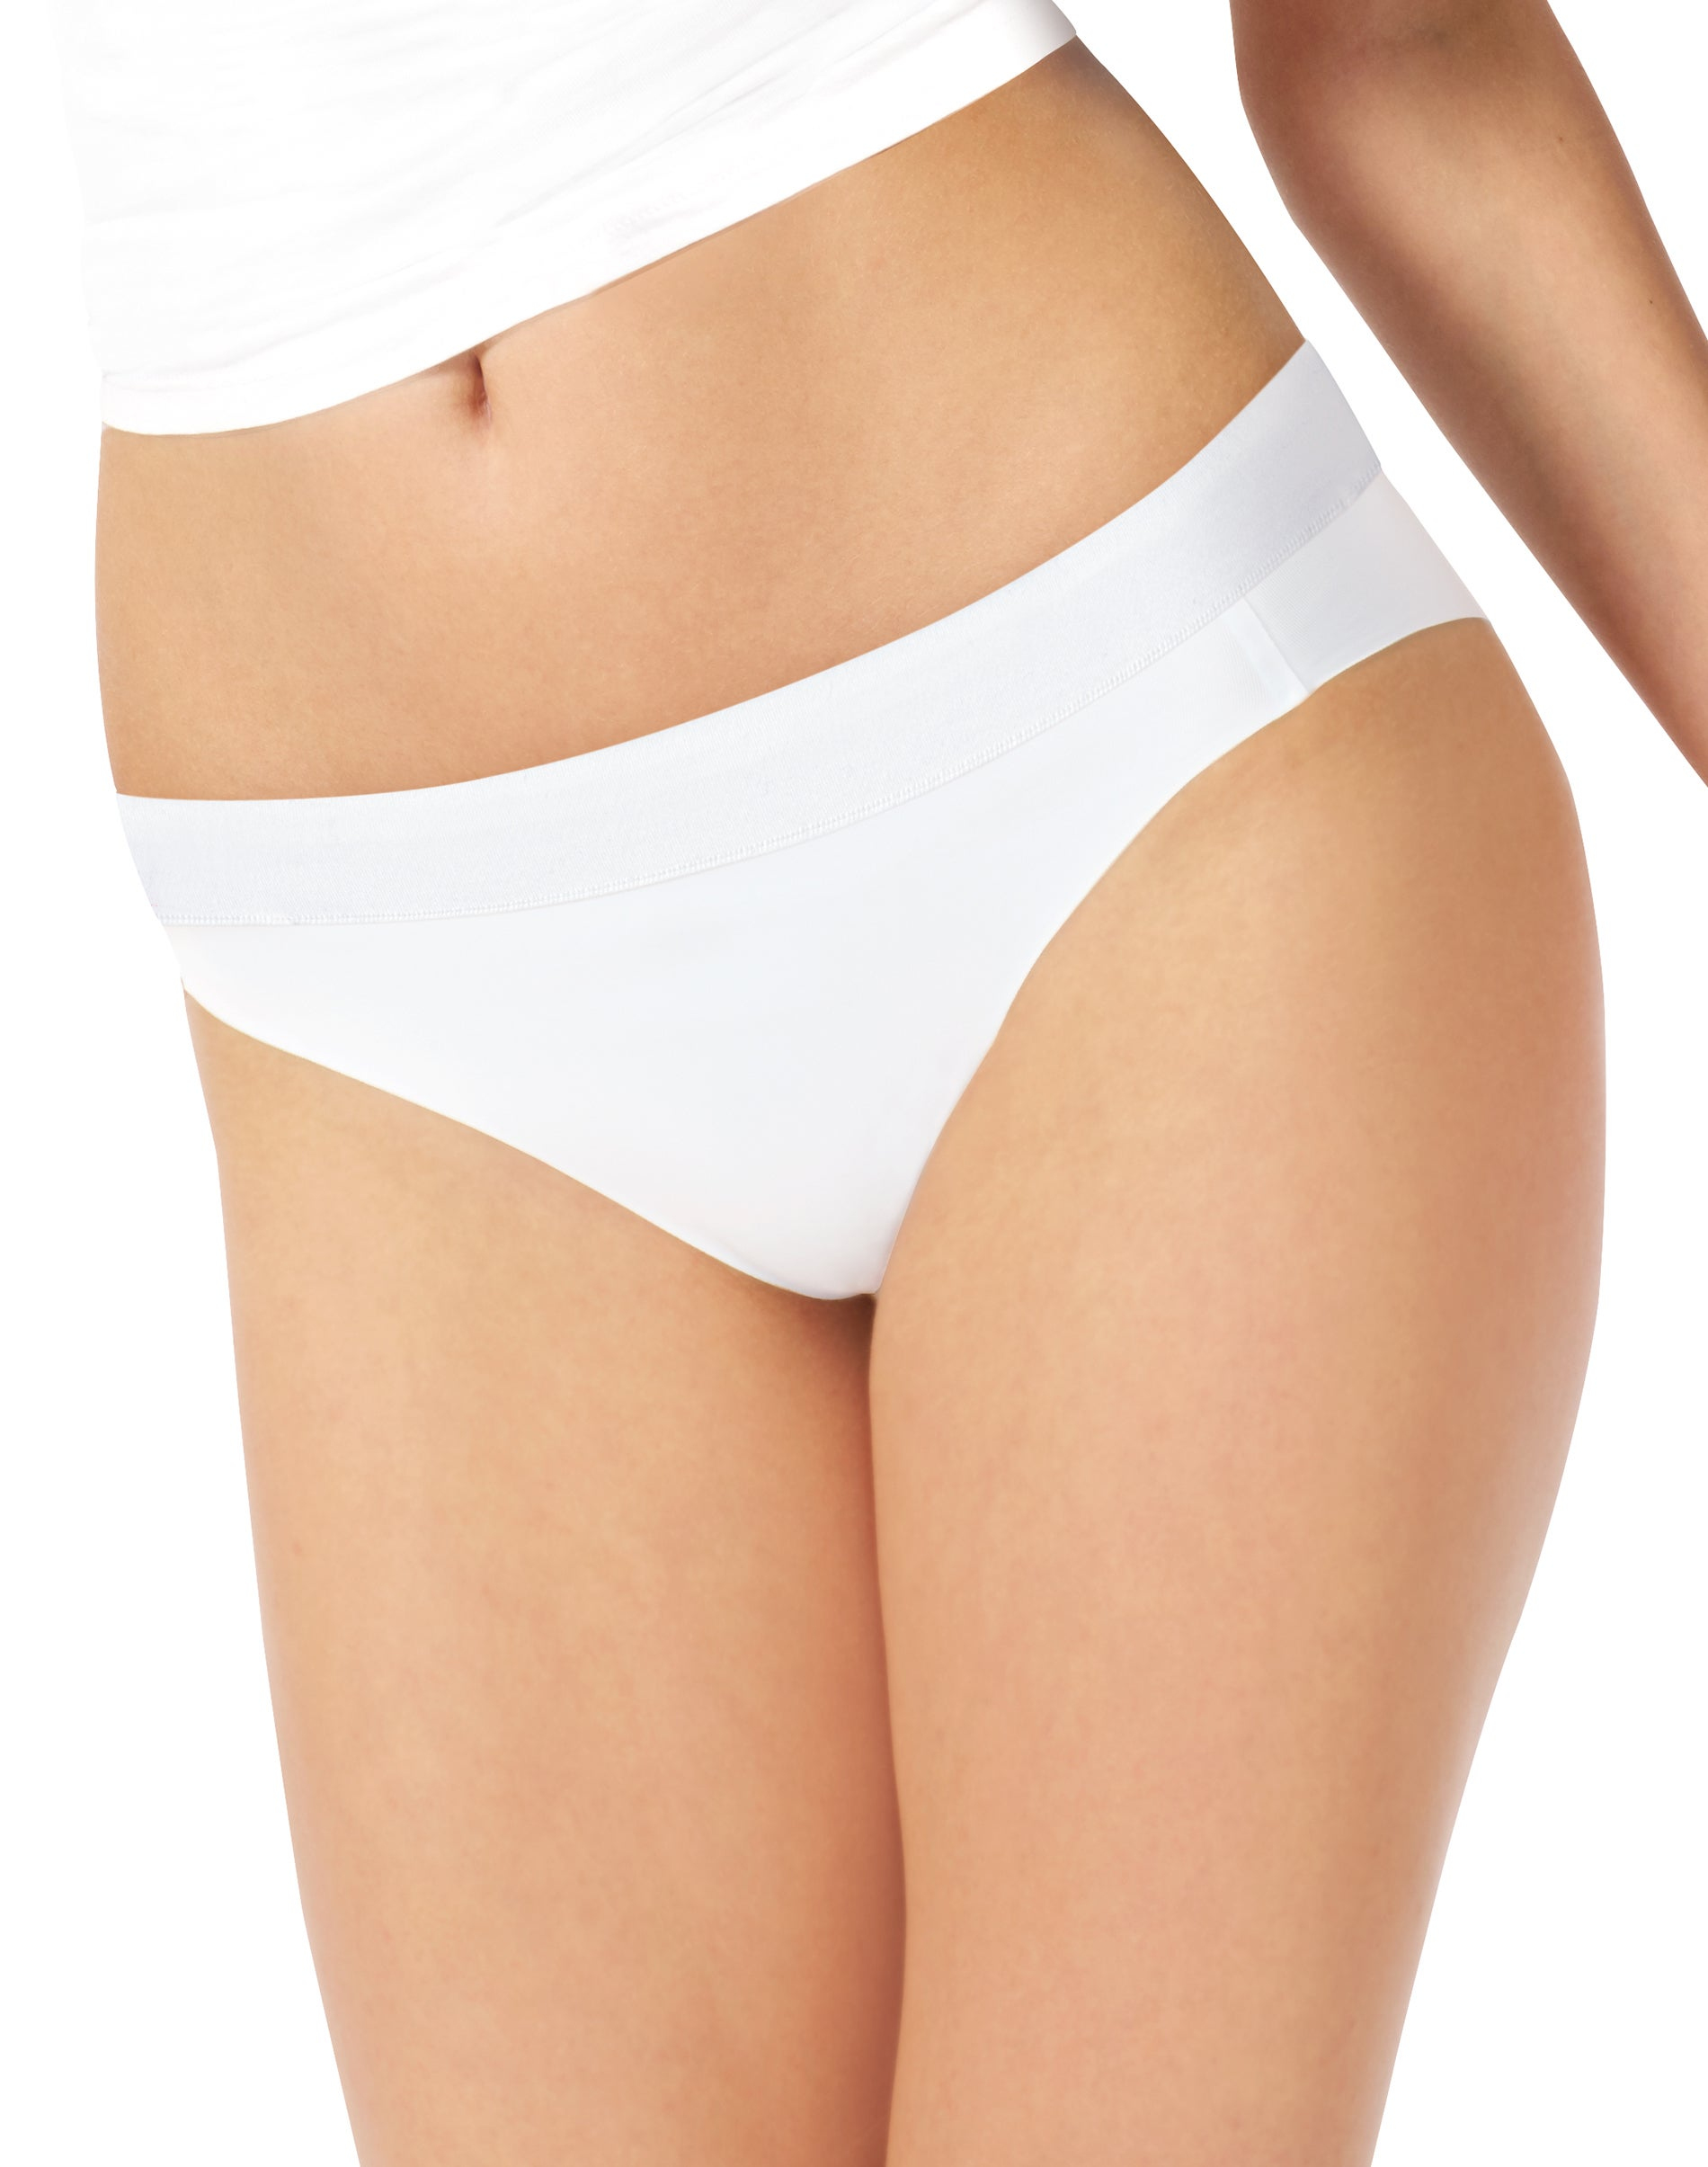 Hanes Womens Constant Comfort Comfortblend Bikini 4-Pack Panty